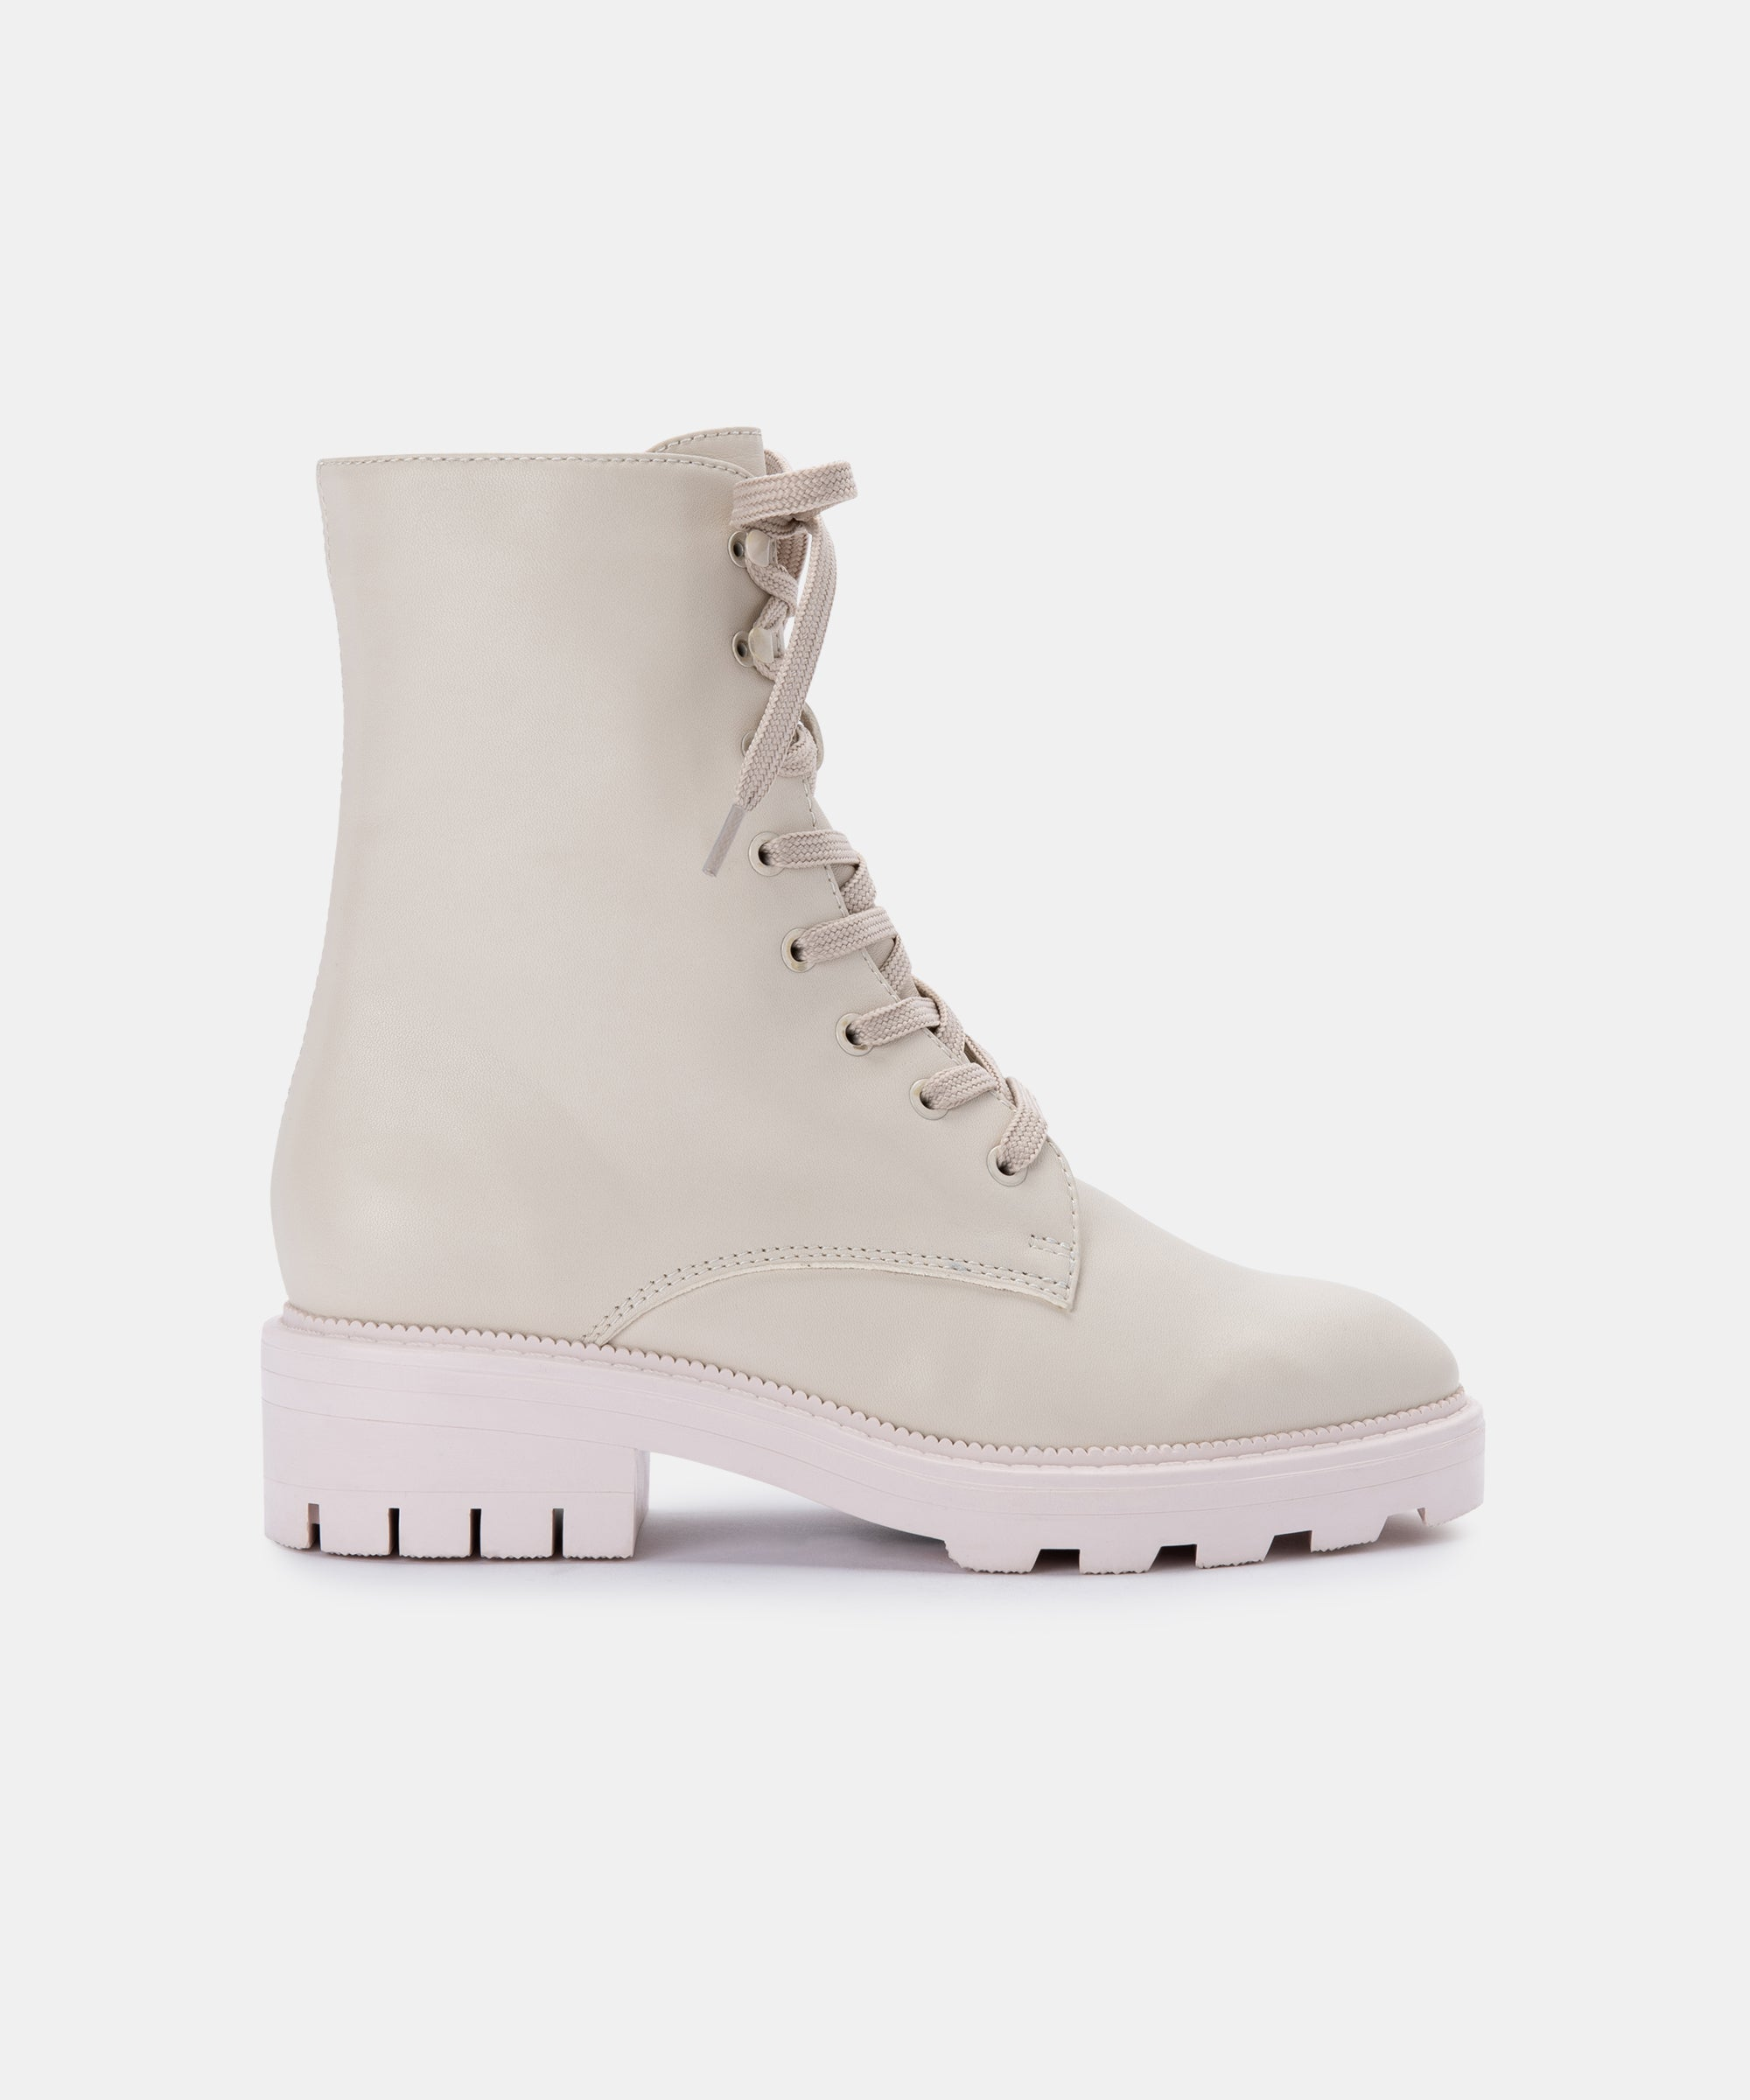 LOTTIE BOOTS IN IVORY LEATHER